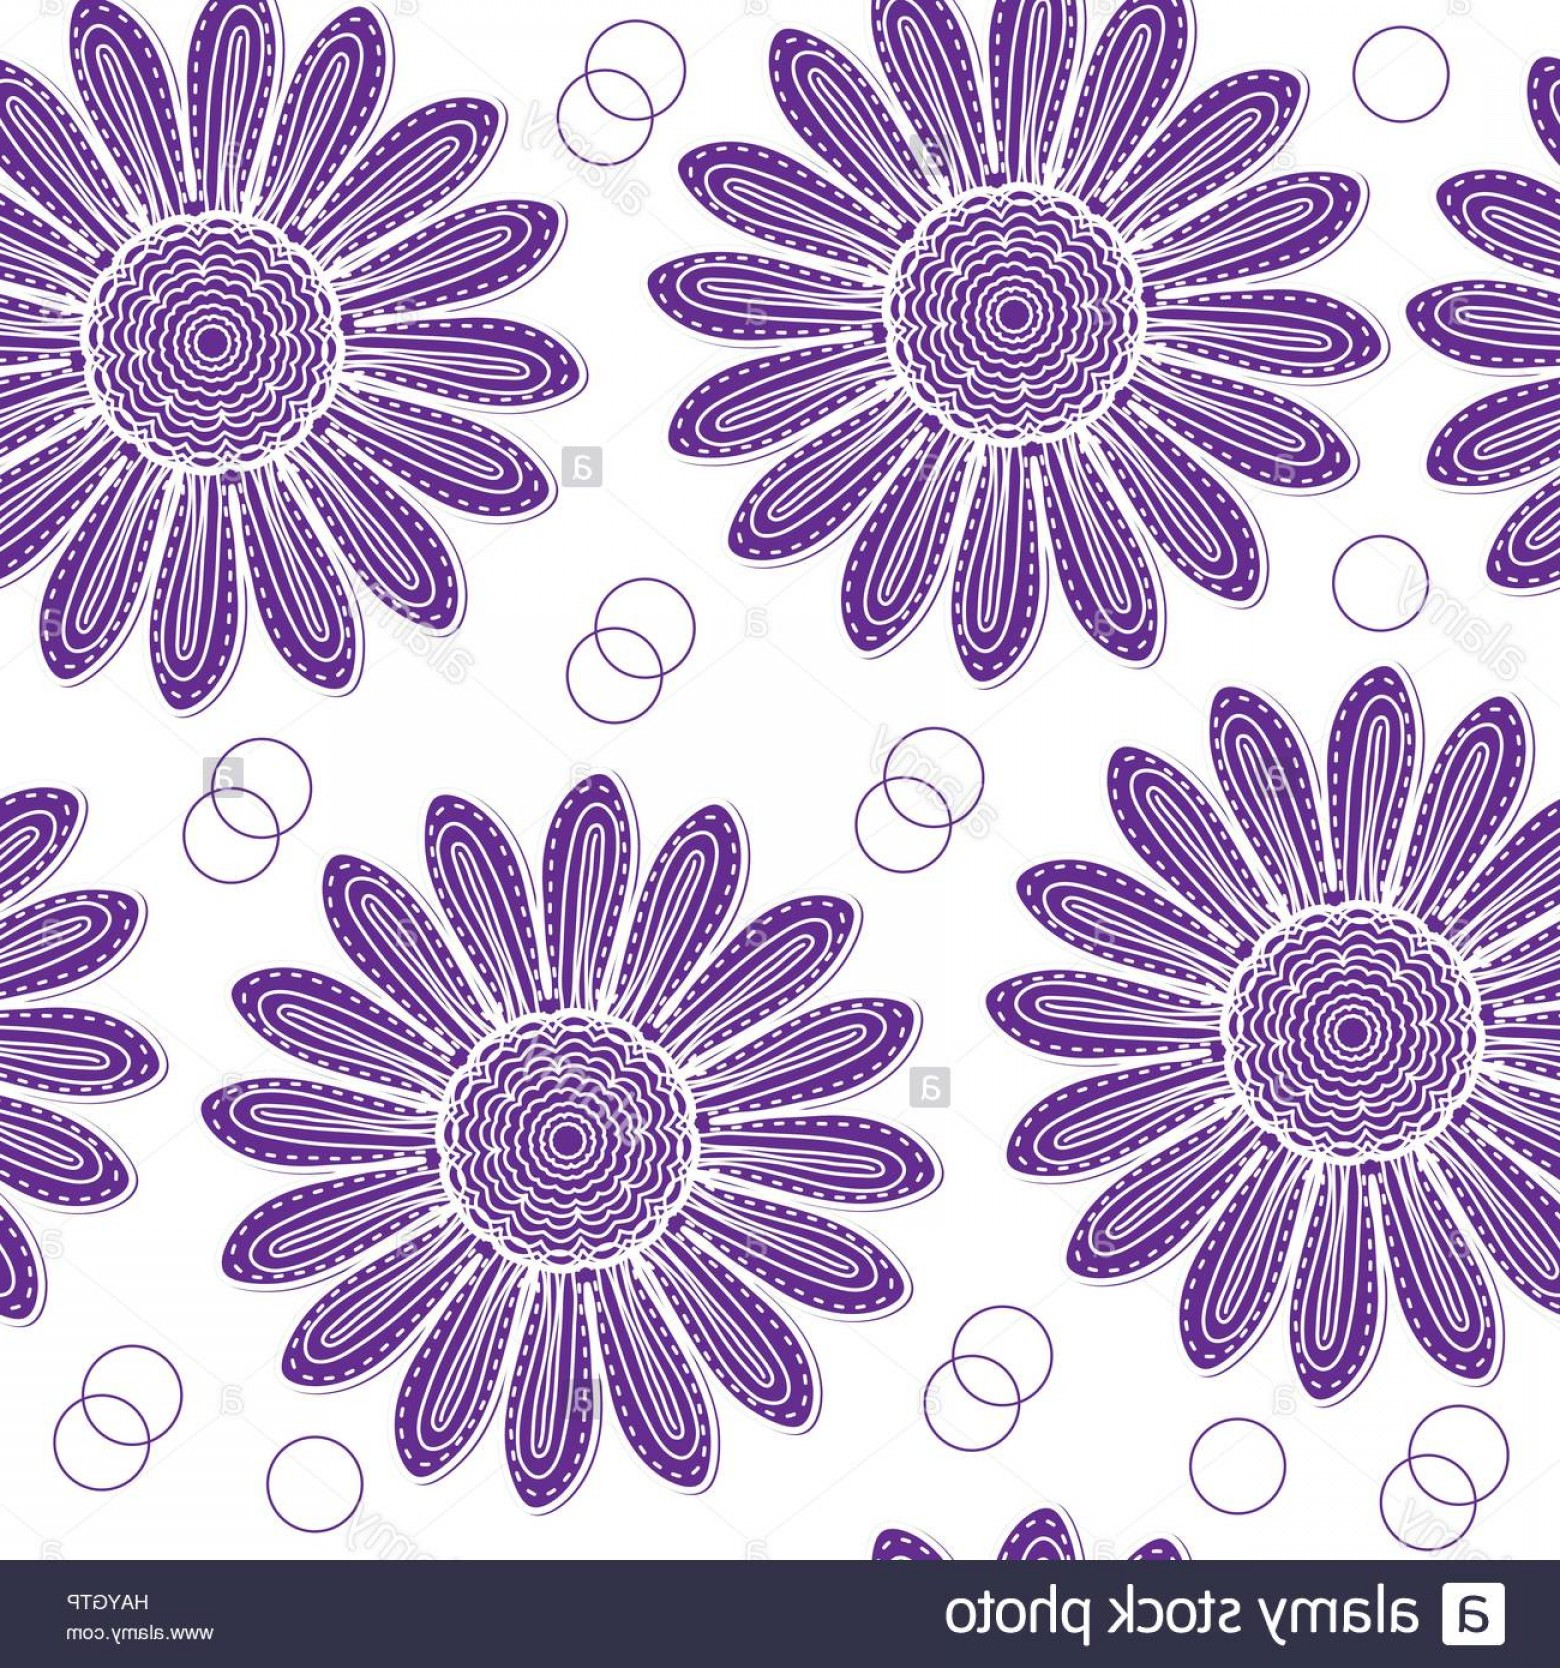 Lilac Vector Drawing: Stock Photo Floral Seamless Pattern Of Purple Chrysanthemum Hand Drawing Style